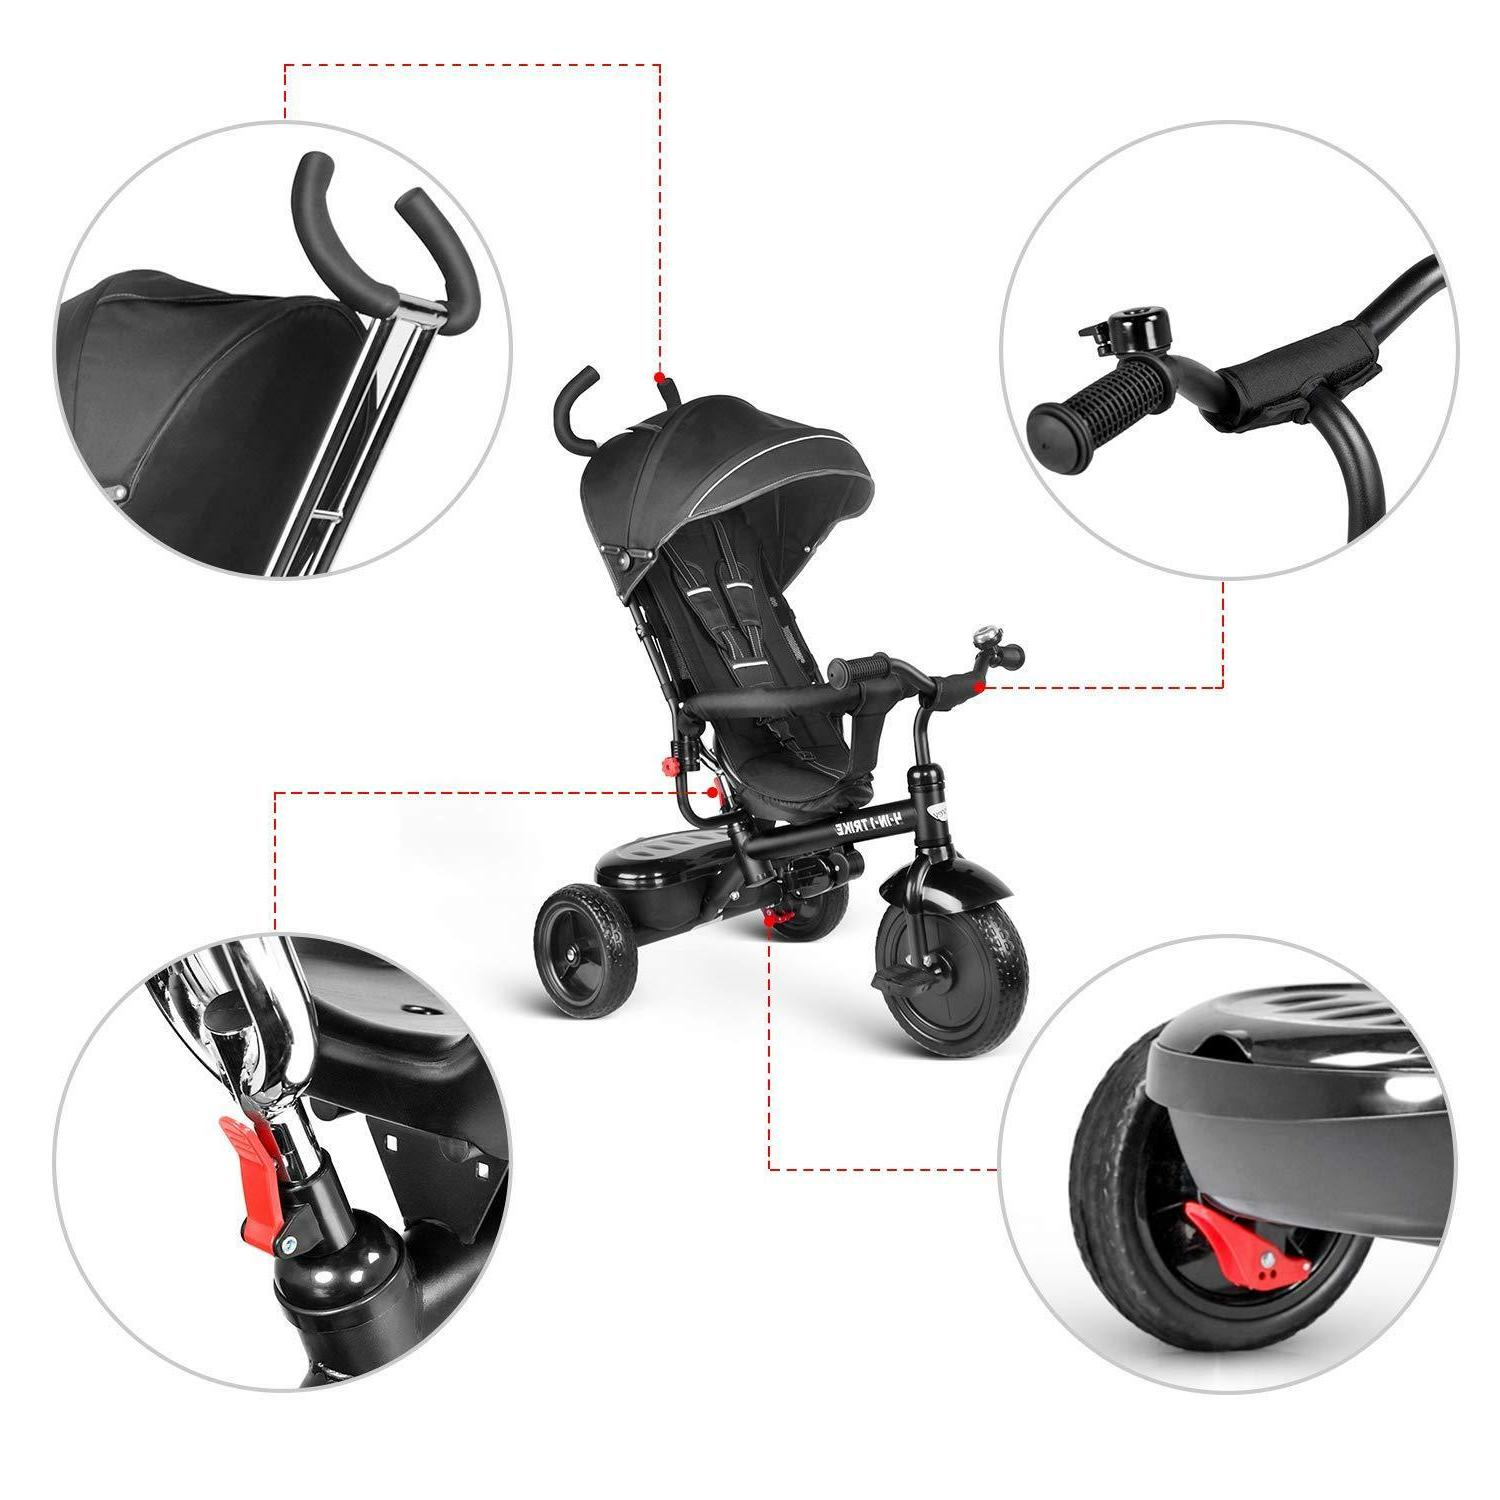 besrey Tricycle Baby pedals with Hood